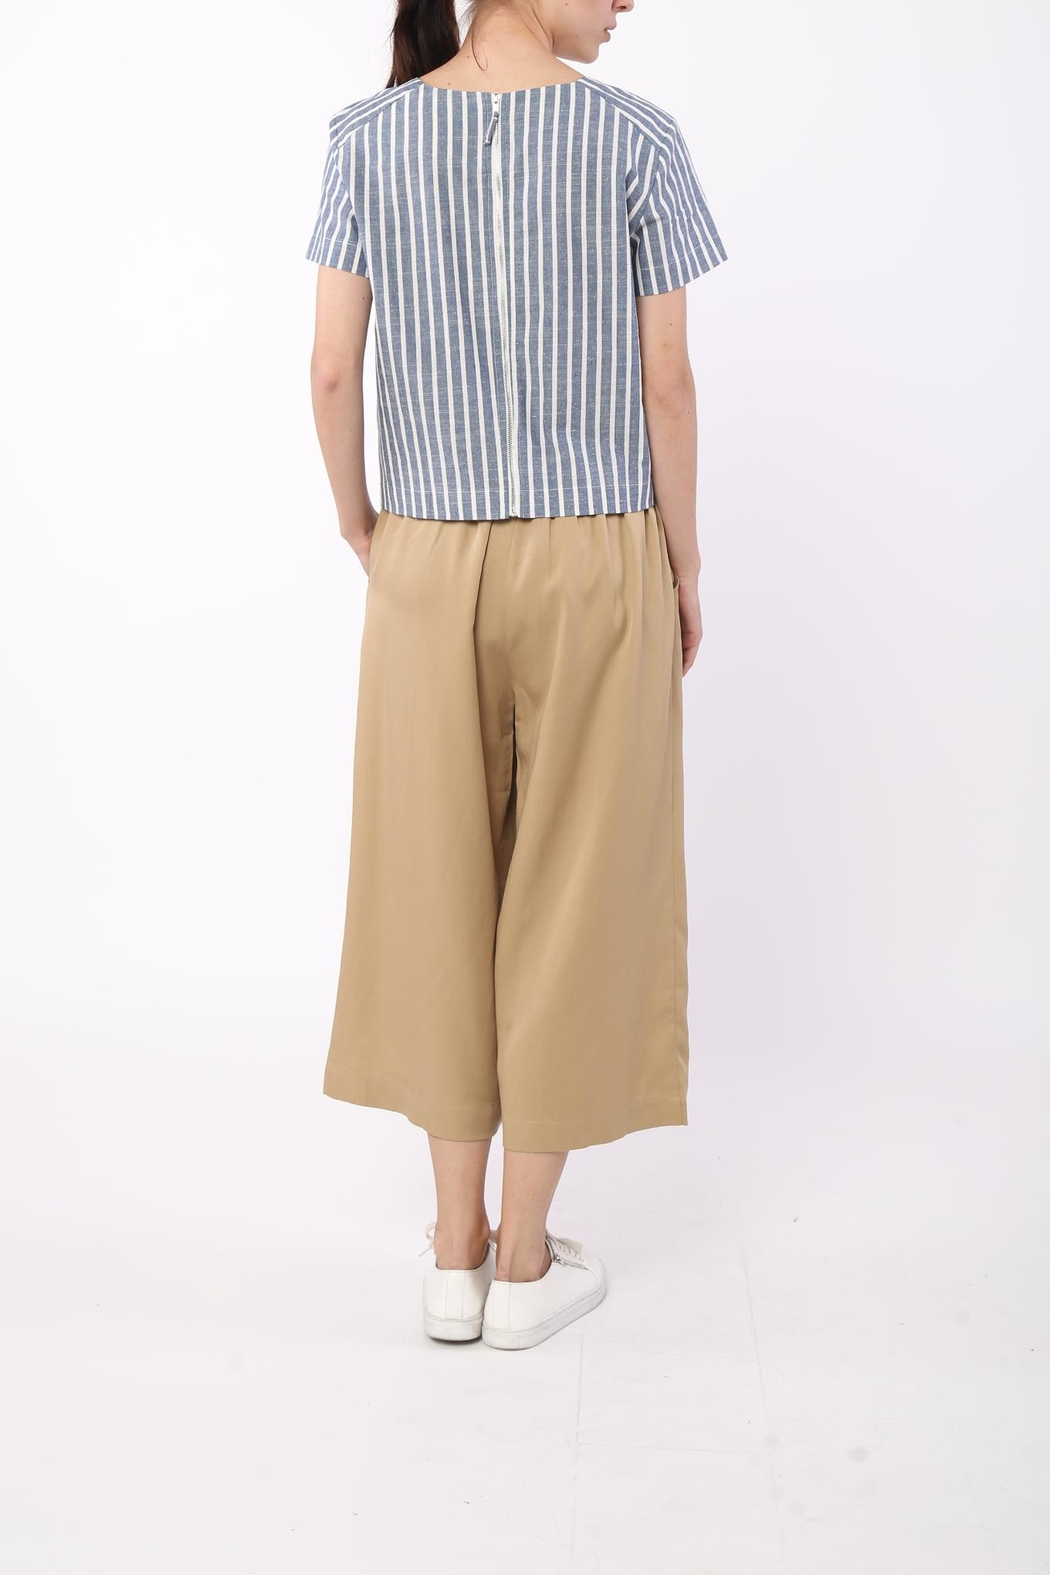 Movint Front Tie Striped Top - Side Cropped Image